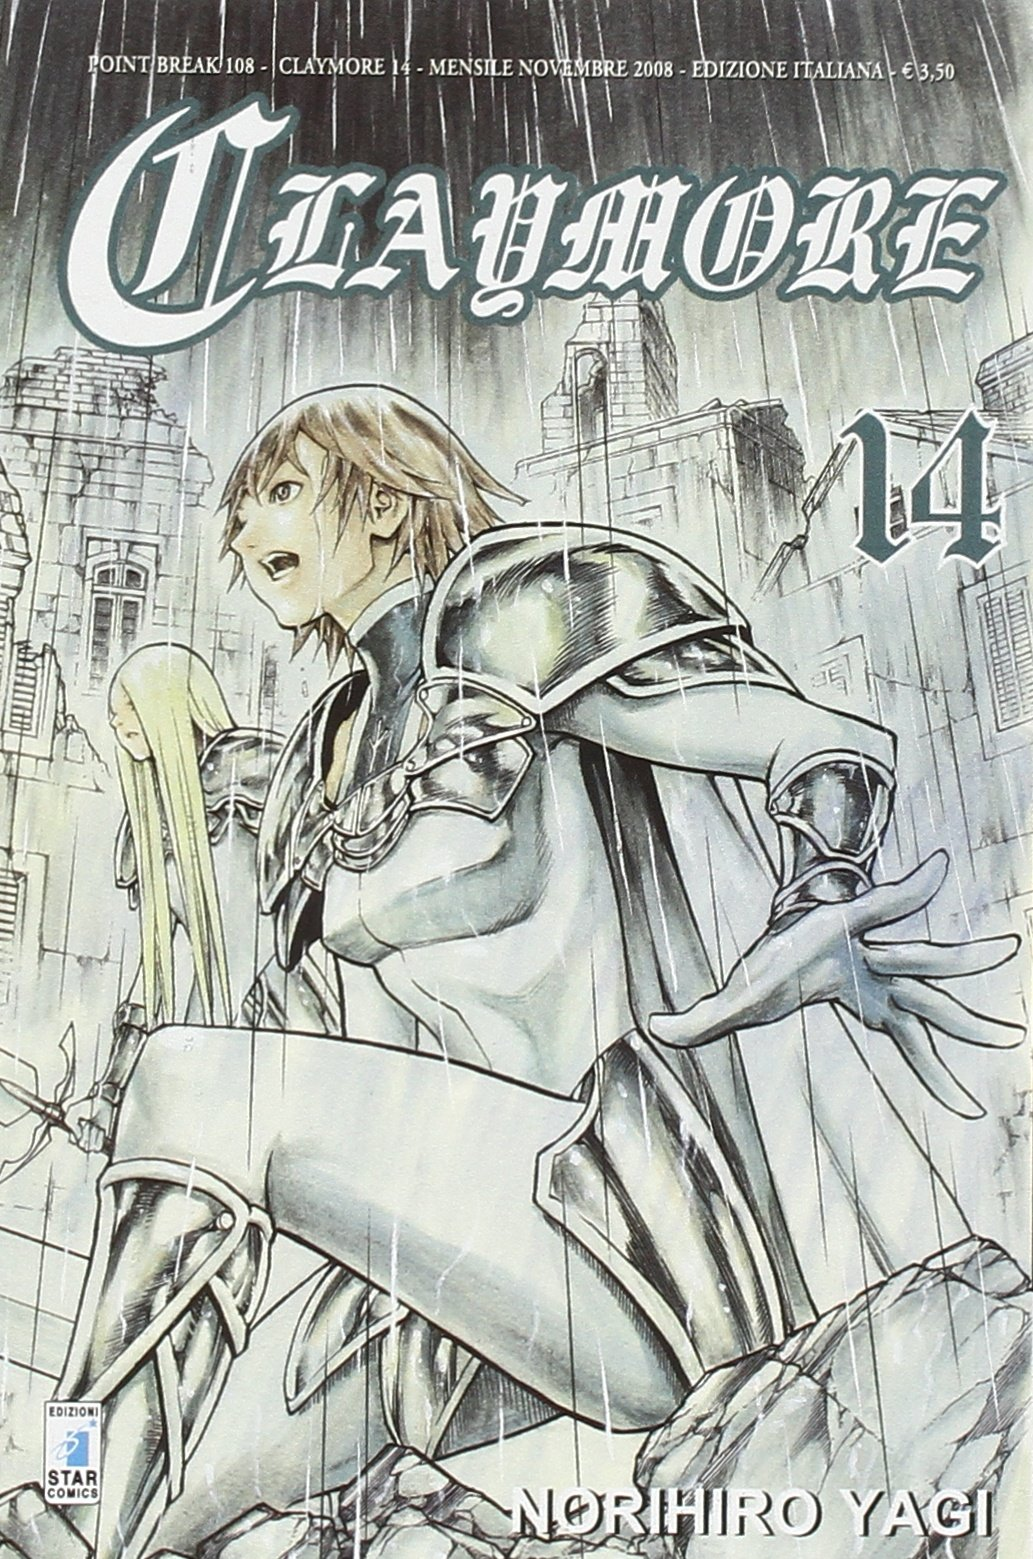 Claymore: 14